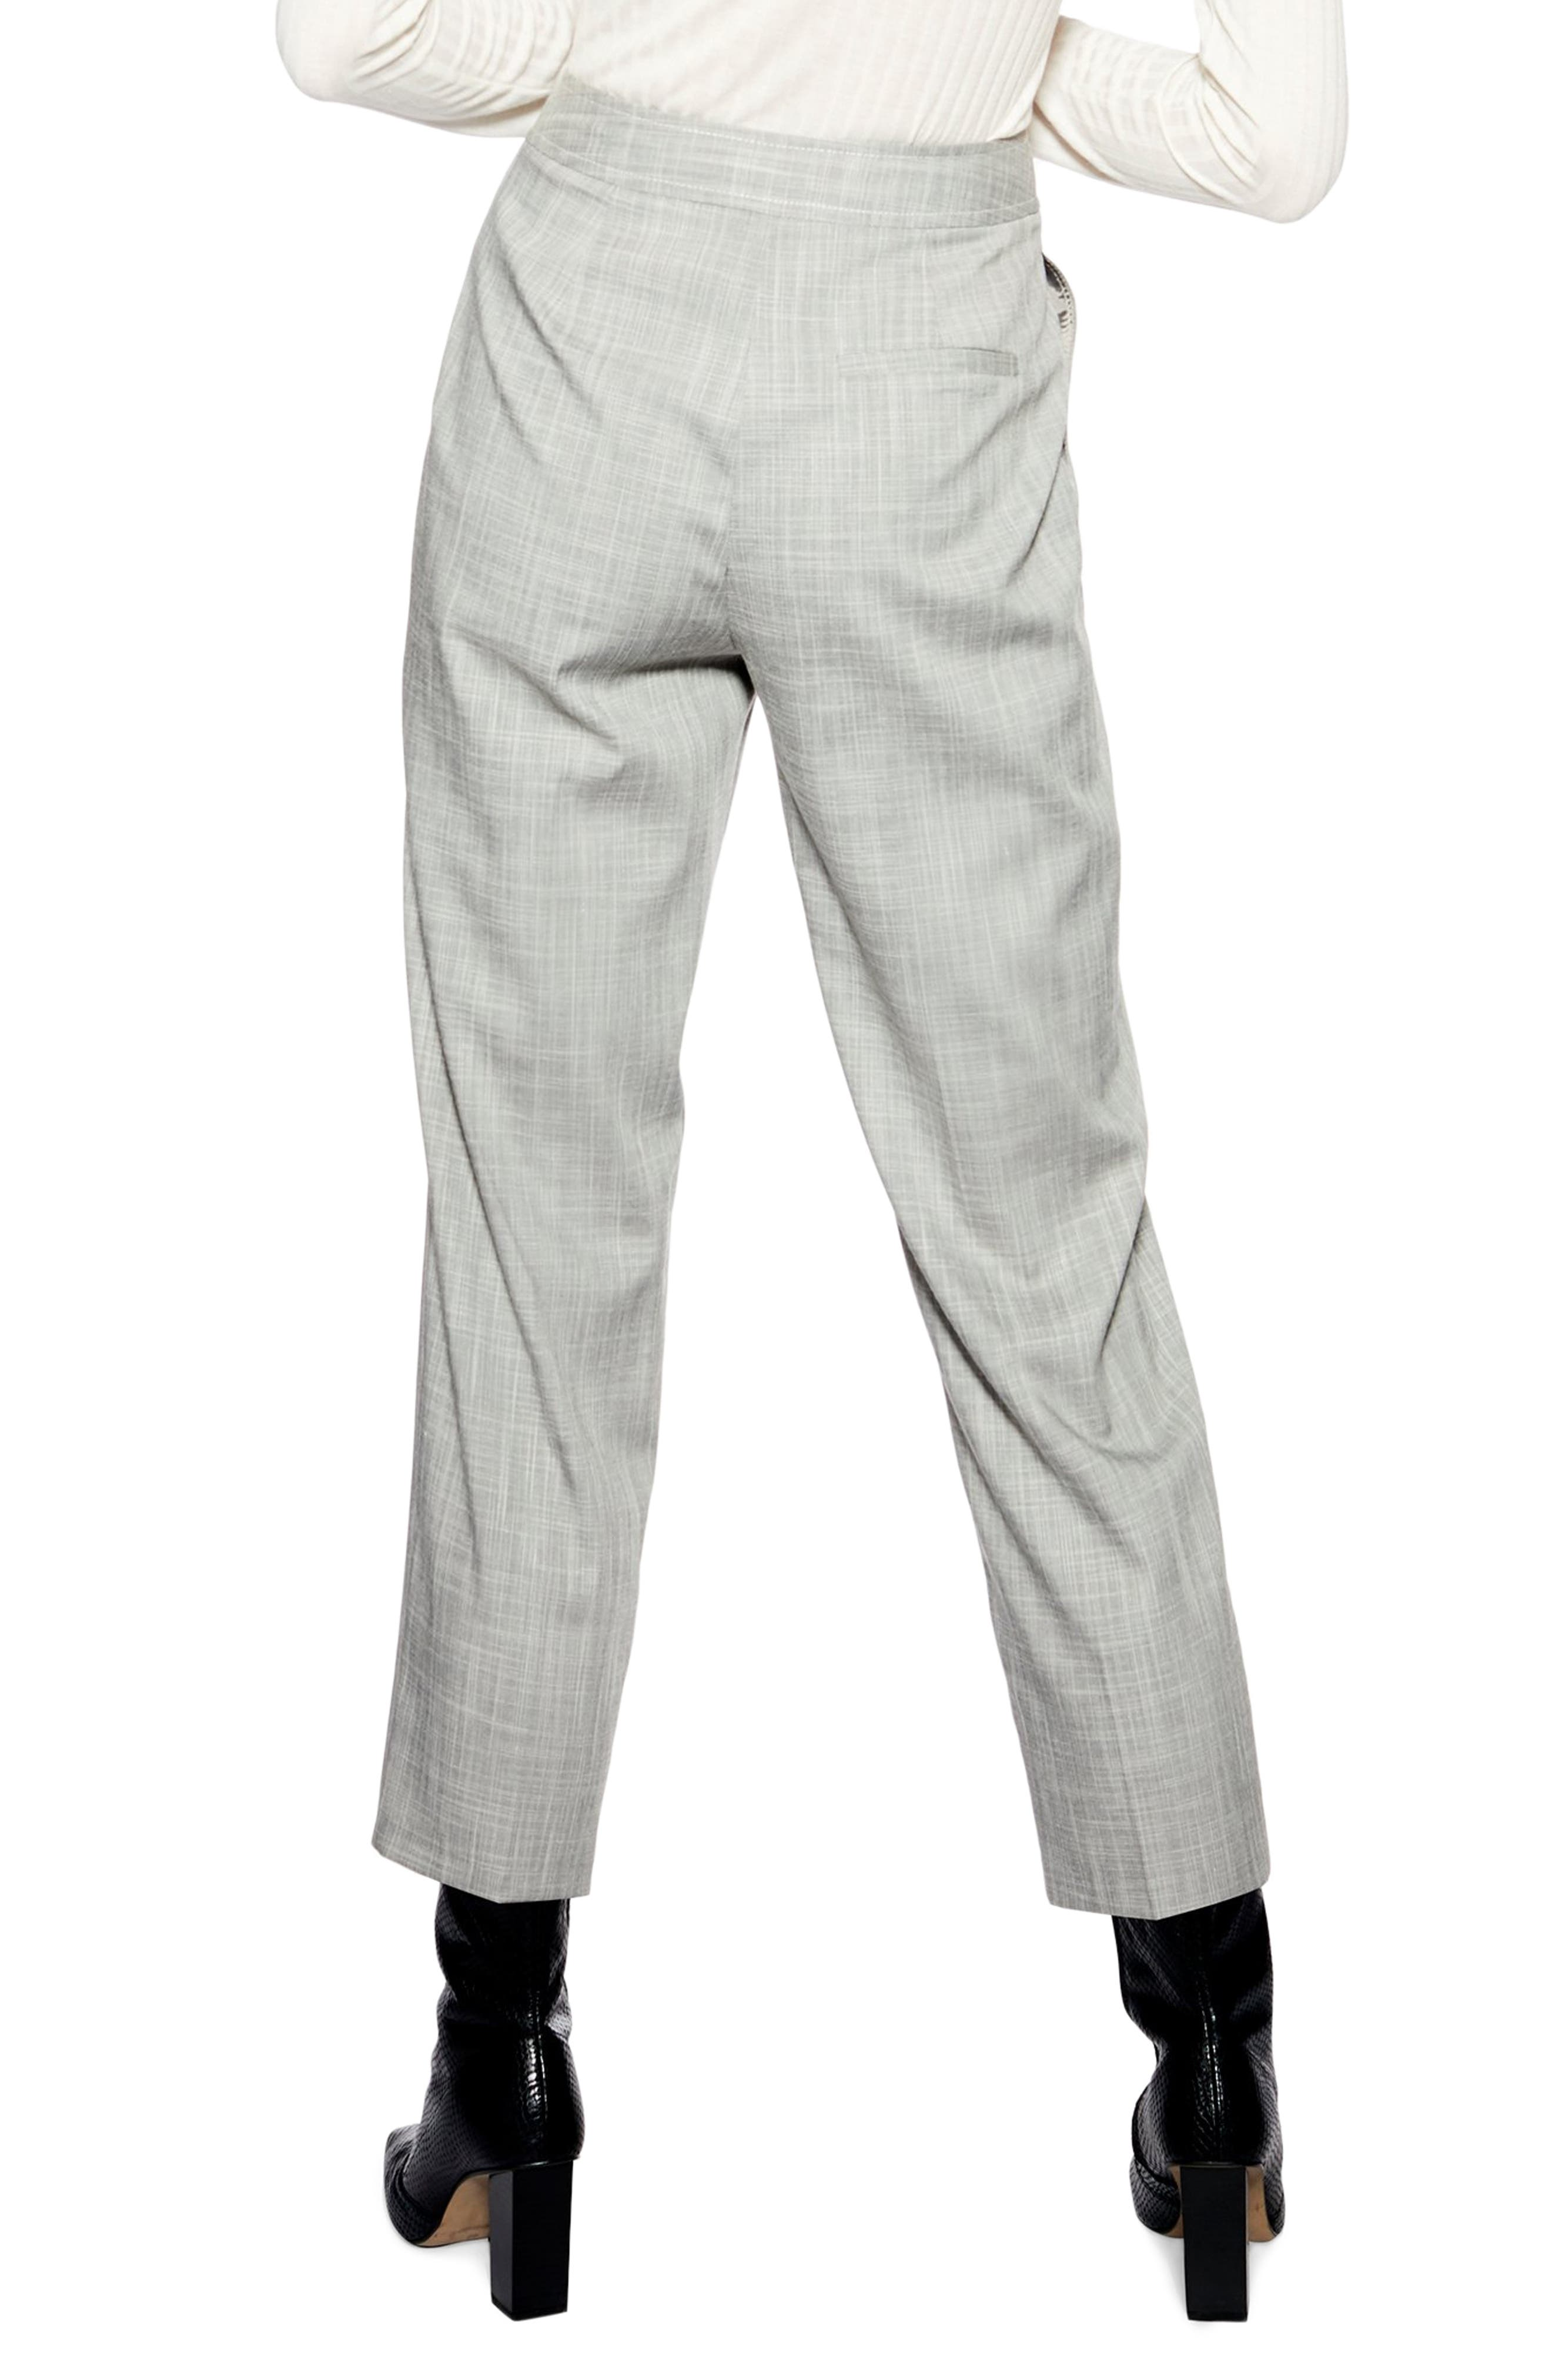 Tonic Tapered Trousers,                             Alternate thumbnail 2, color,                             GREY